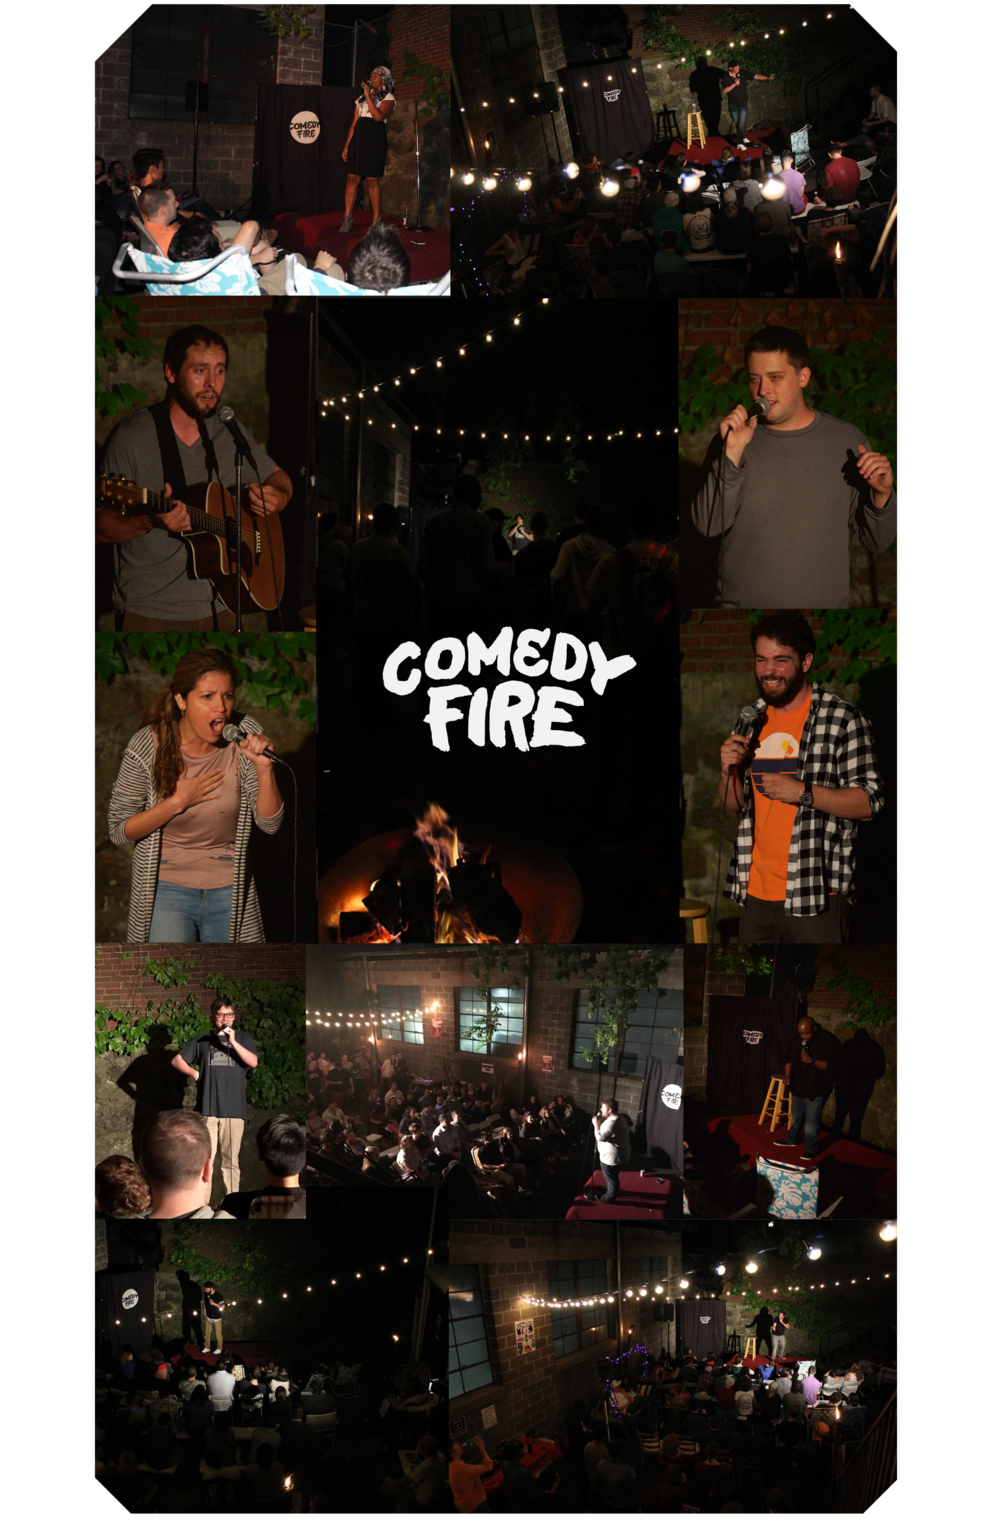 A few photos from our first and second Comedy Fire events